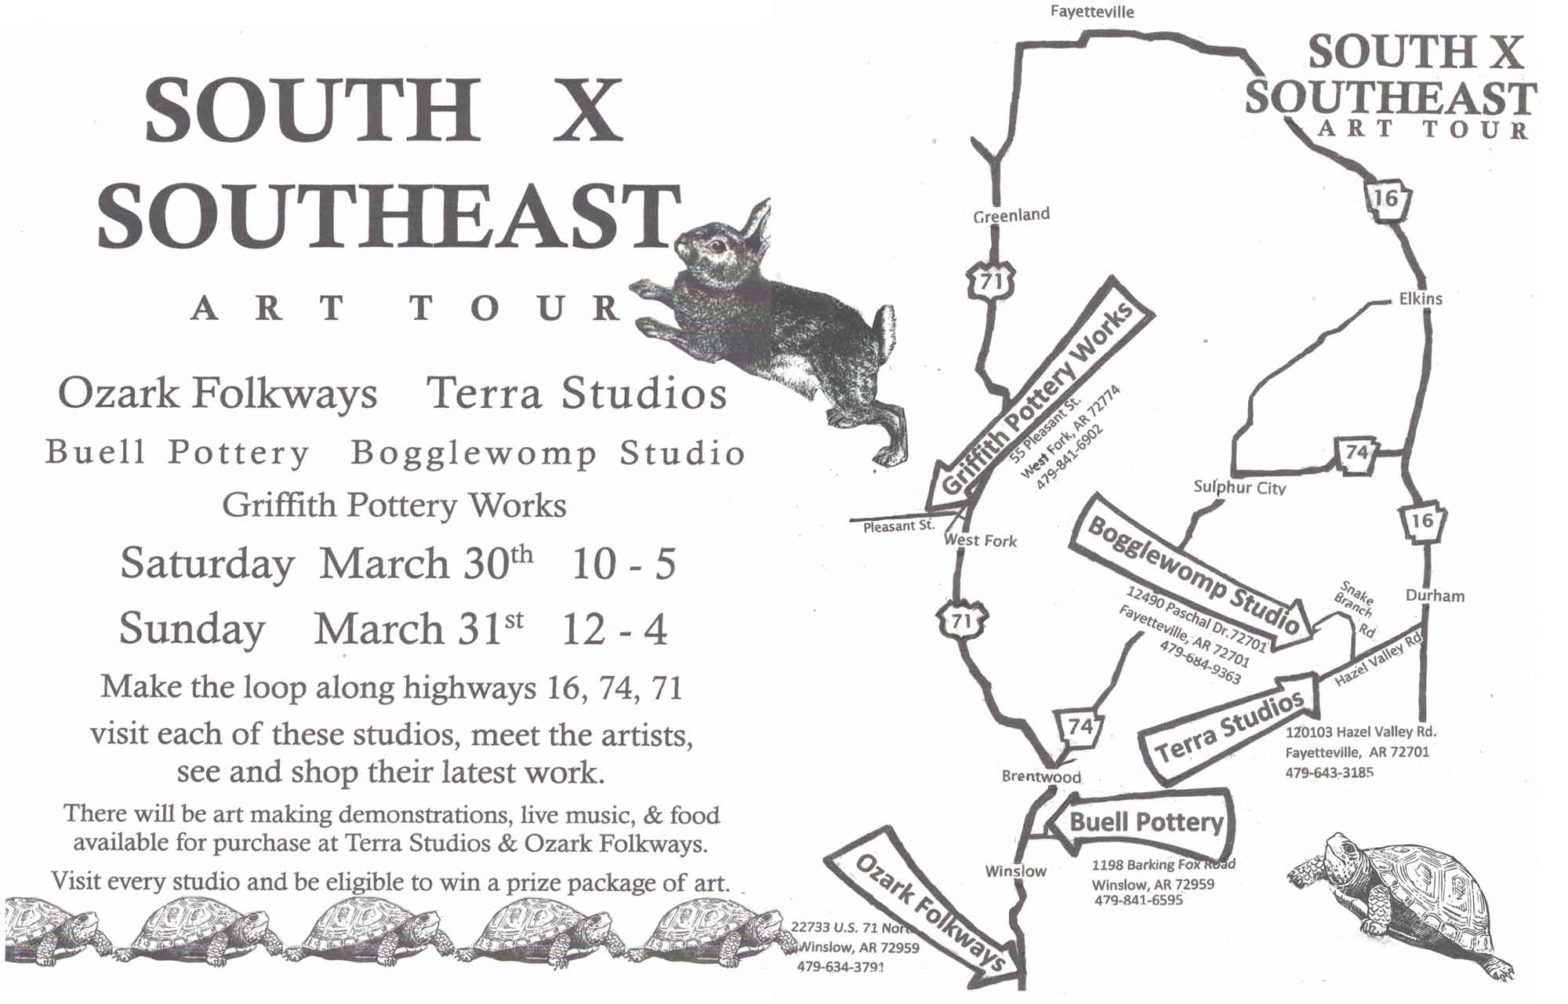 The tour route for South x Southeast Art Tour 2019